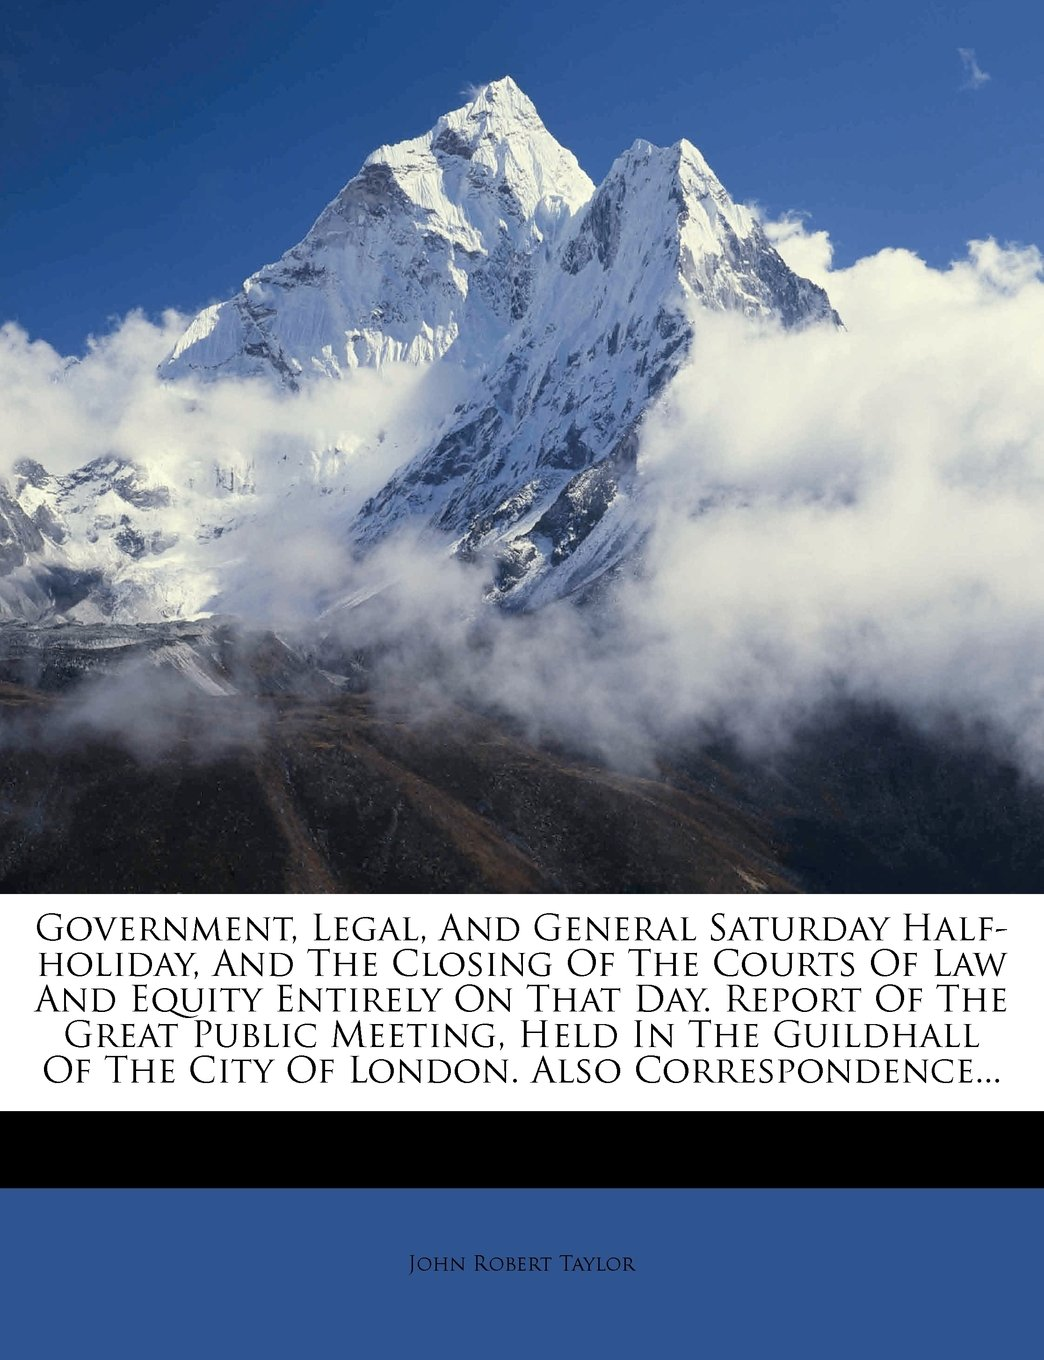 Download Government, Legal, And General Saturday Half-holiday, And The Closing Of The Courts Of Law And Equity Entirely On That Day. Report Of The Great Public ... Of The City Of London. Also Correspondence... PDF